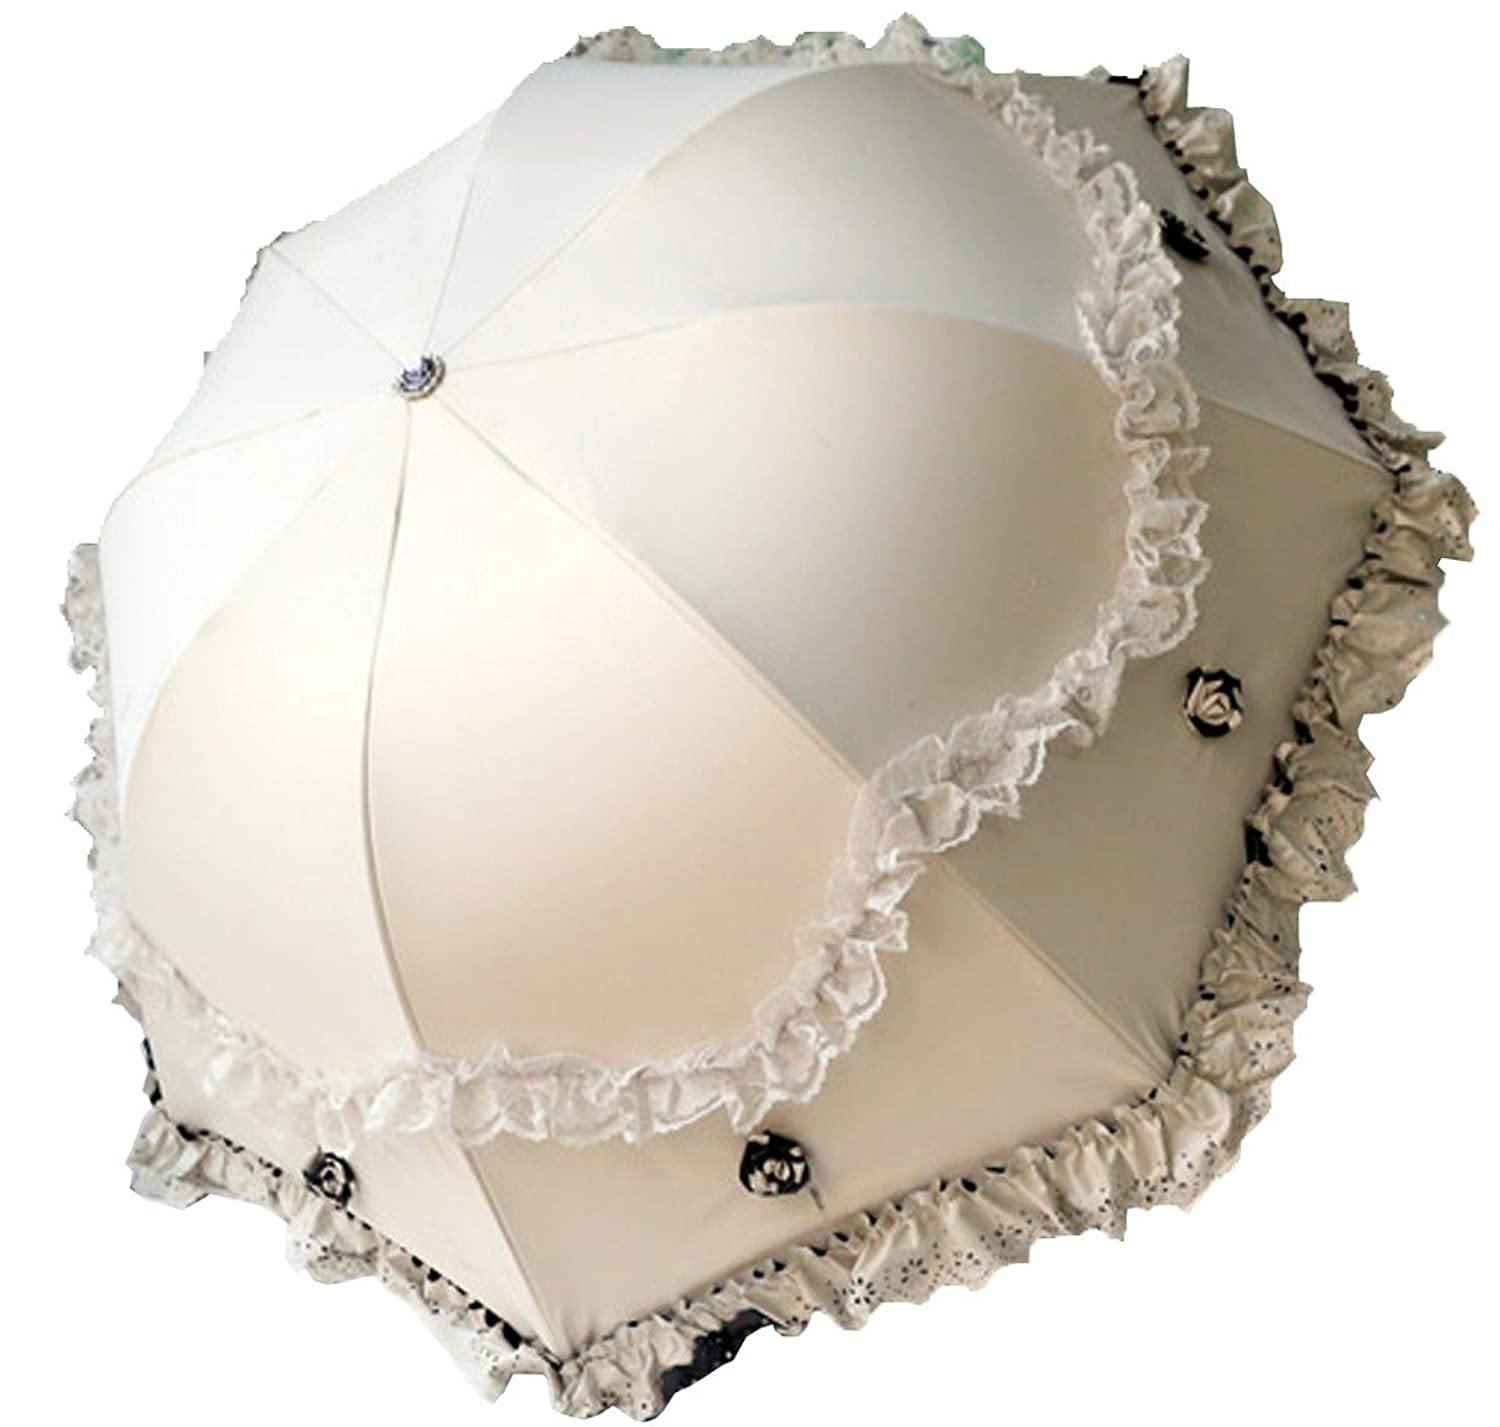 Vintage Style Parasols and Umbrellas Supergirl Women Parasol Travel Compact Lace Sunshade Anti-UV Windproof Rain Umbrella $28.99 AT vintagedancer.com